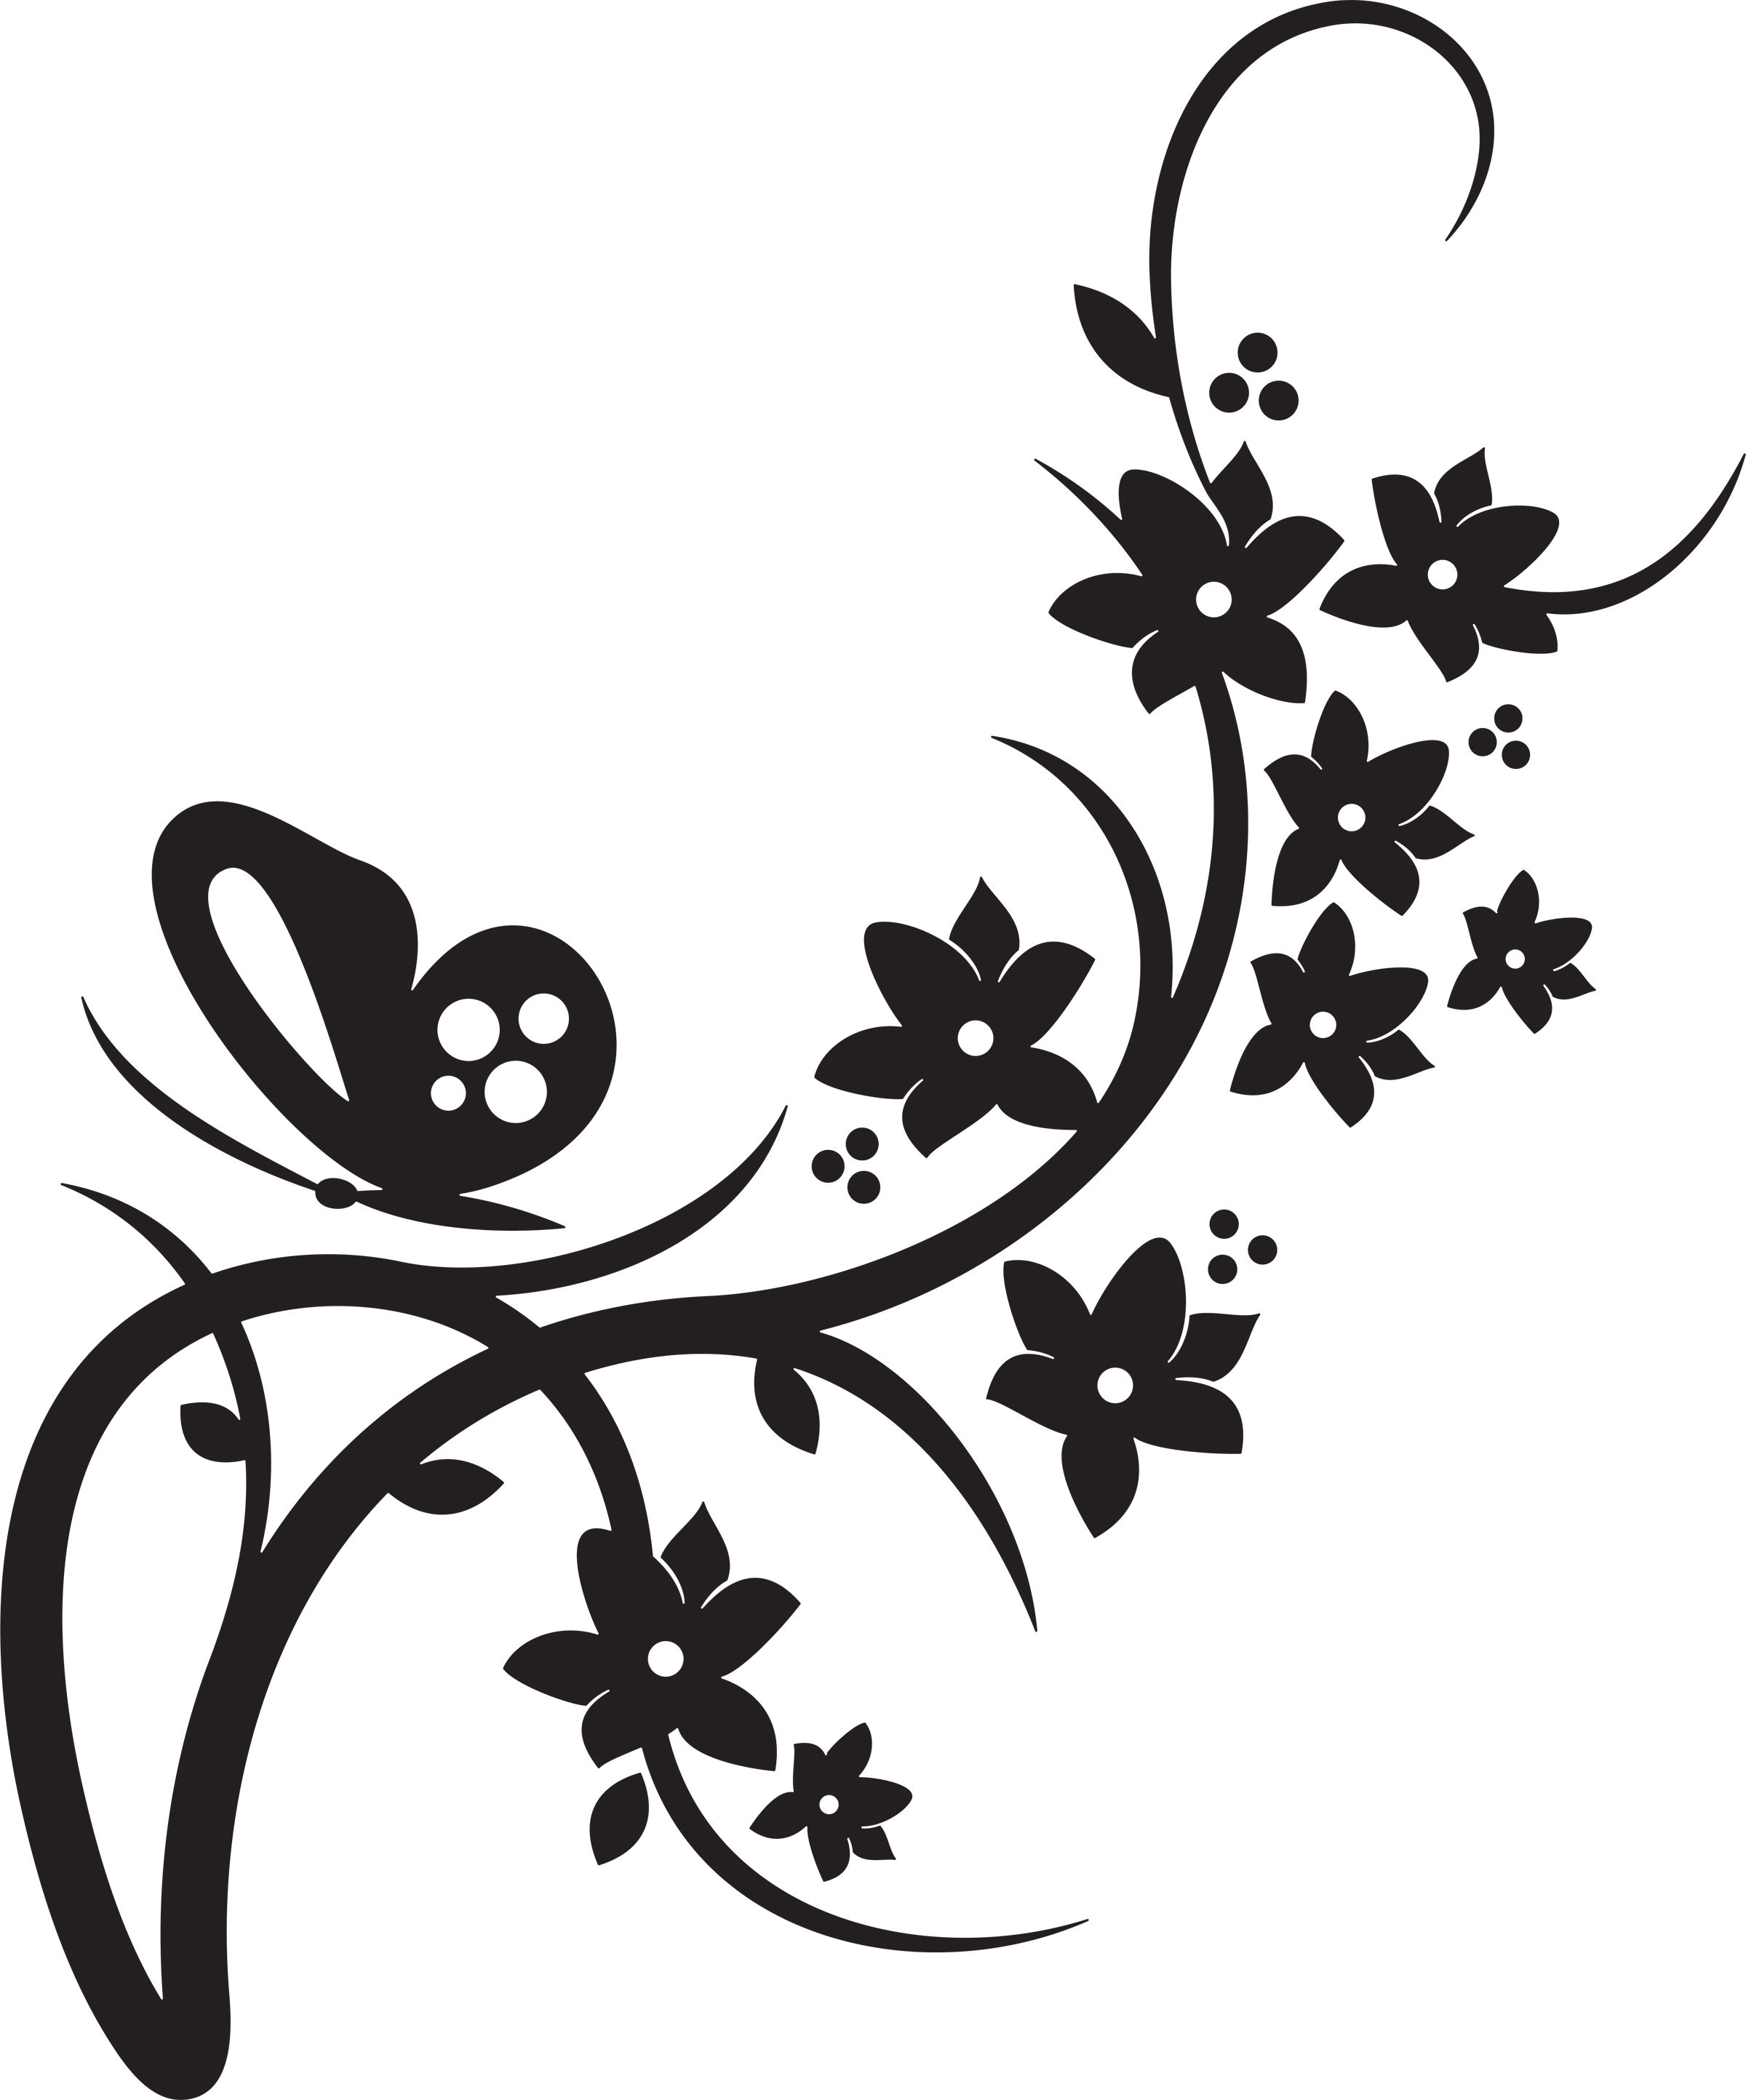 wedding clip art black and wh - Wedding Clipart Black And White